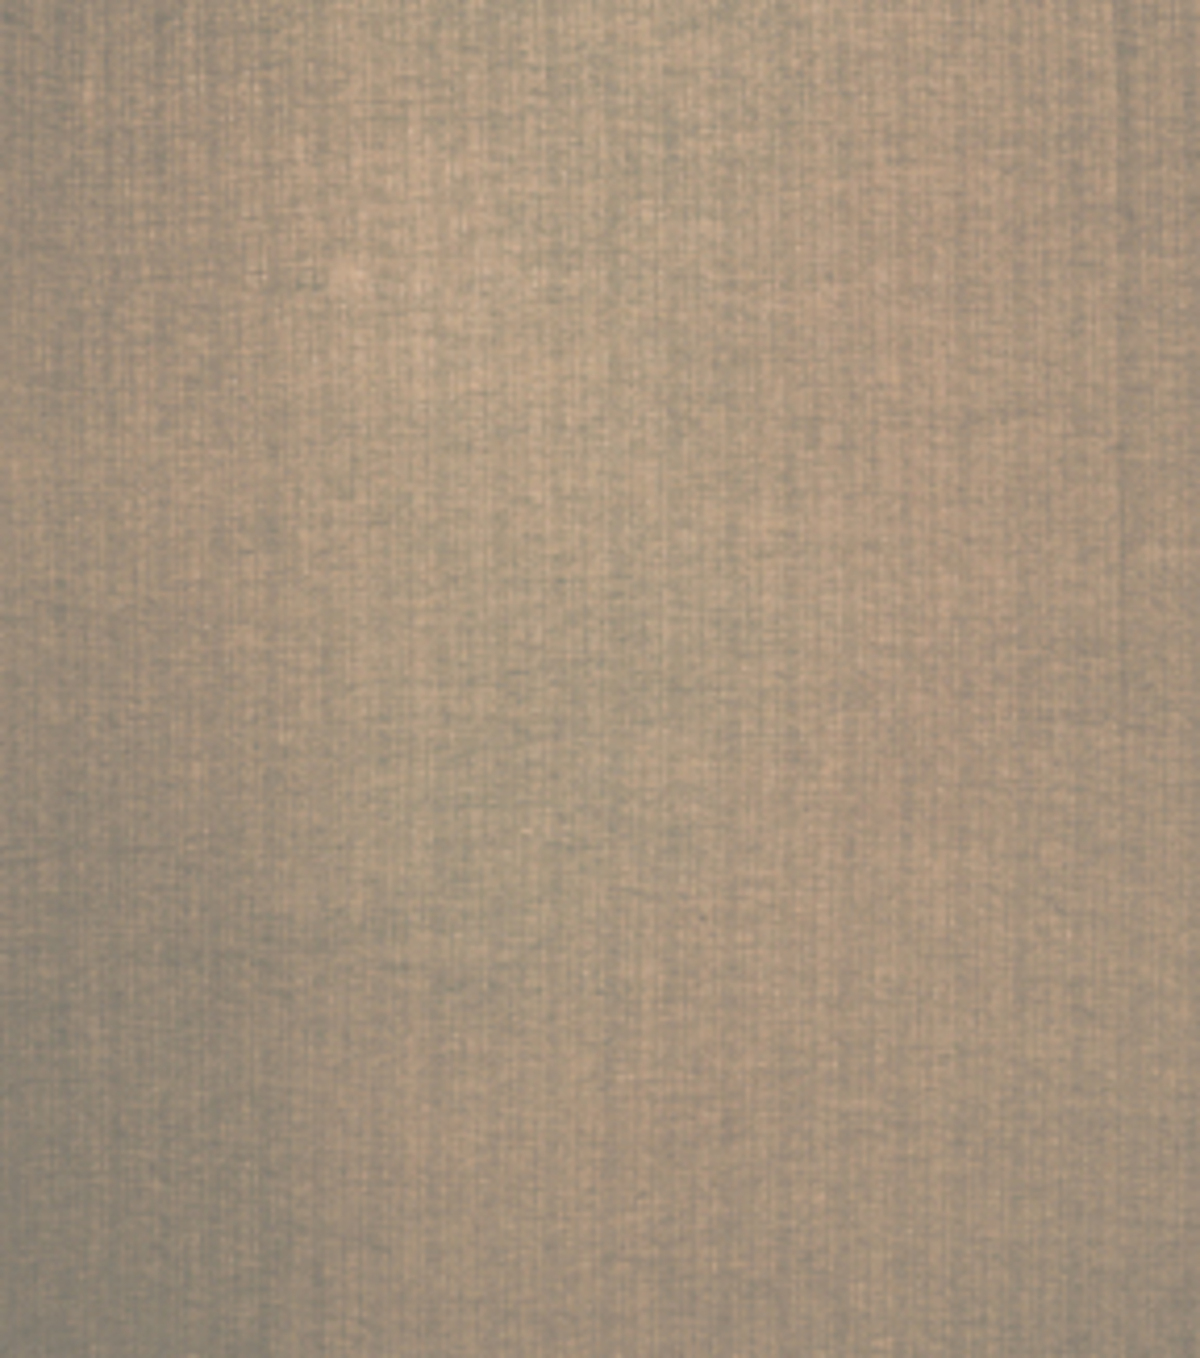 Home Decor 8\u0022x8\u0022 Fabric Swatch-SMC Designs Crayon / Chocolate